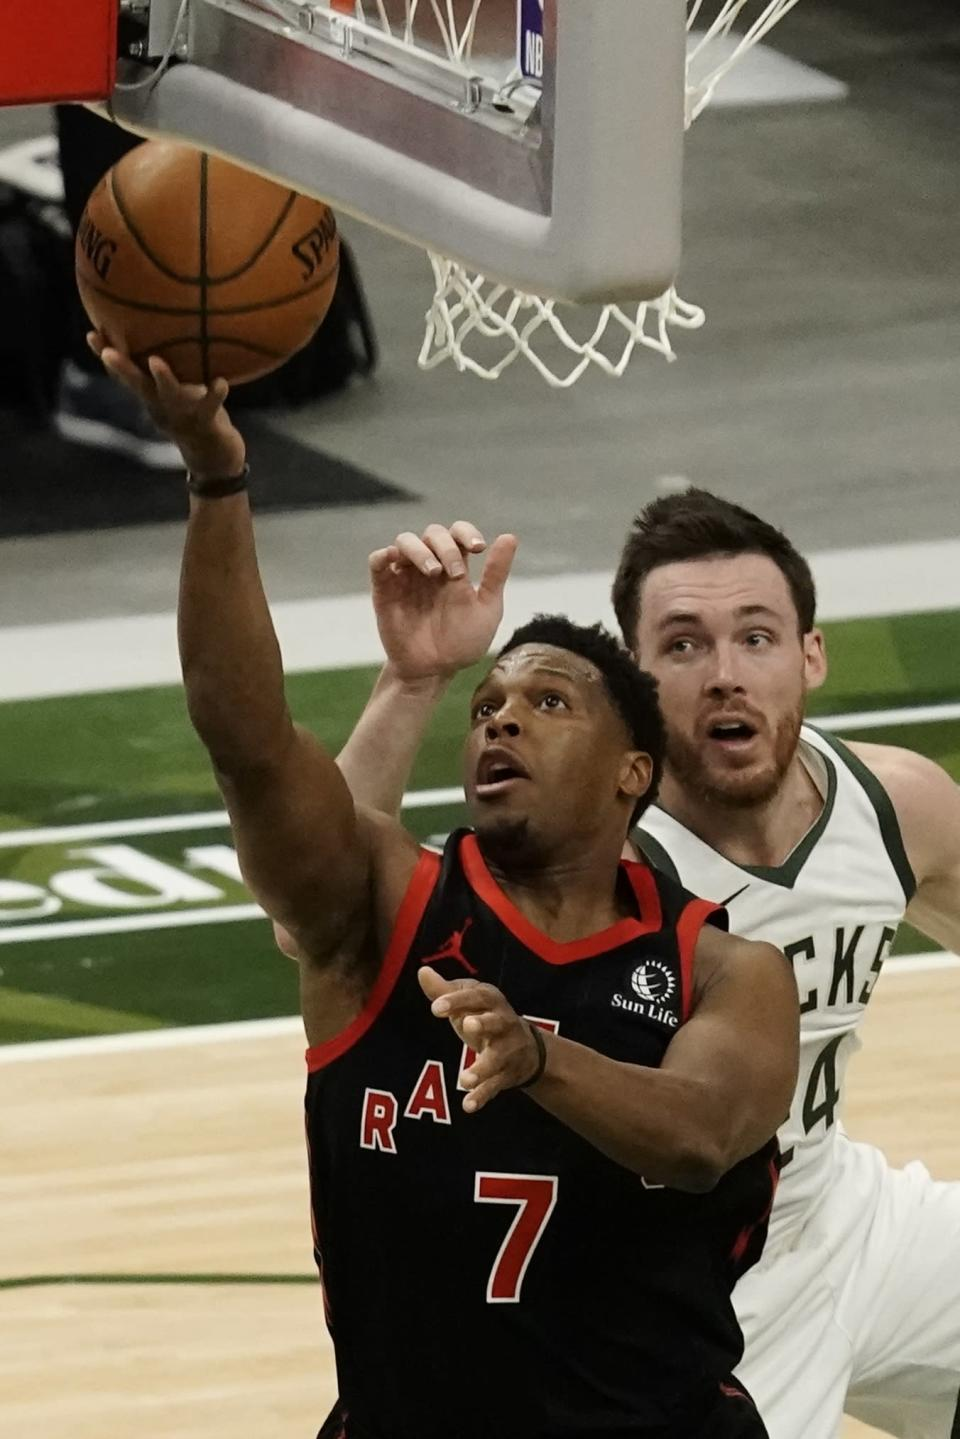 Toronto Raptors' Kyle Lowry shoots past Milwaukee Bucks' Pat Connaughton during the first half of an NBA basketball game Tuesday, Feb. 16, 2021, in Milwaukee. (AP Photo/Morry Gash)